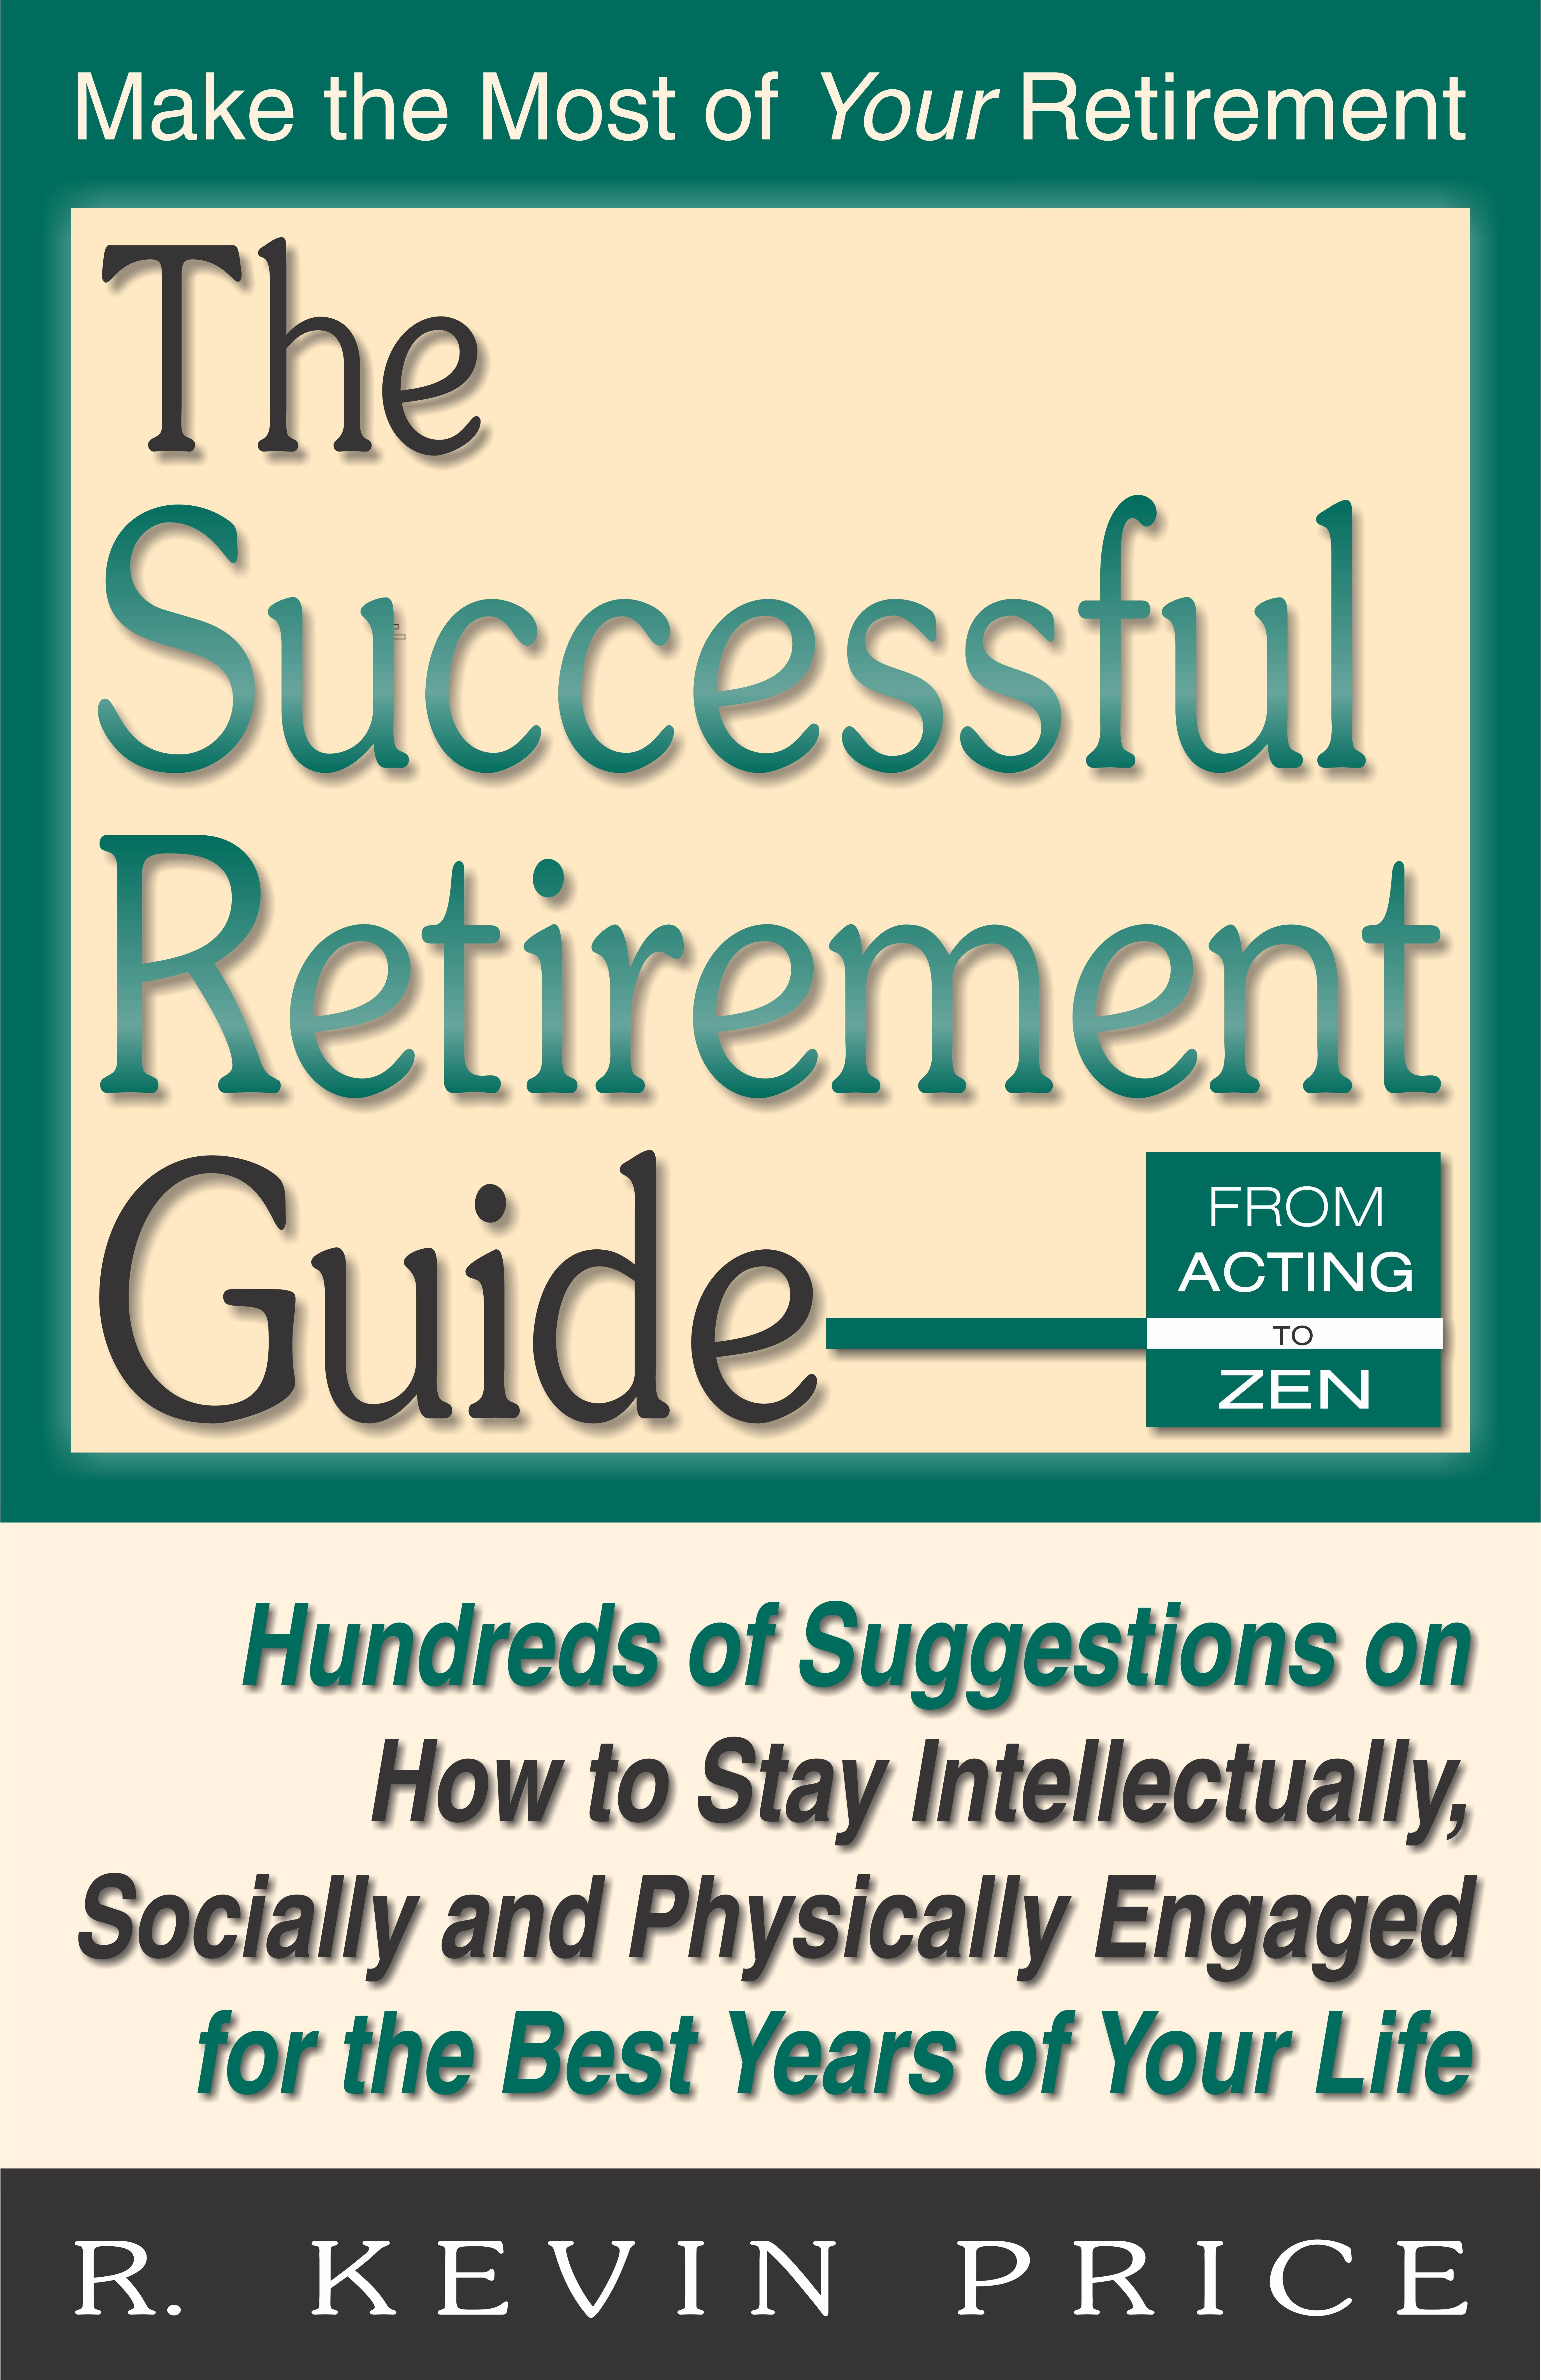 The Successful Retirement Guide: Hundreds of Suggestions on How to Stay Intellectually, Socially and Physically Engaged for the Best Years of Your Lif EB9781568251394